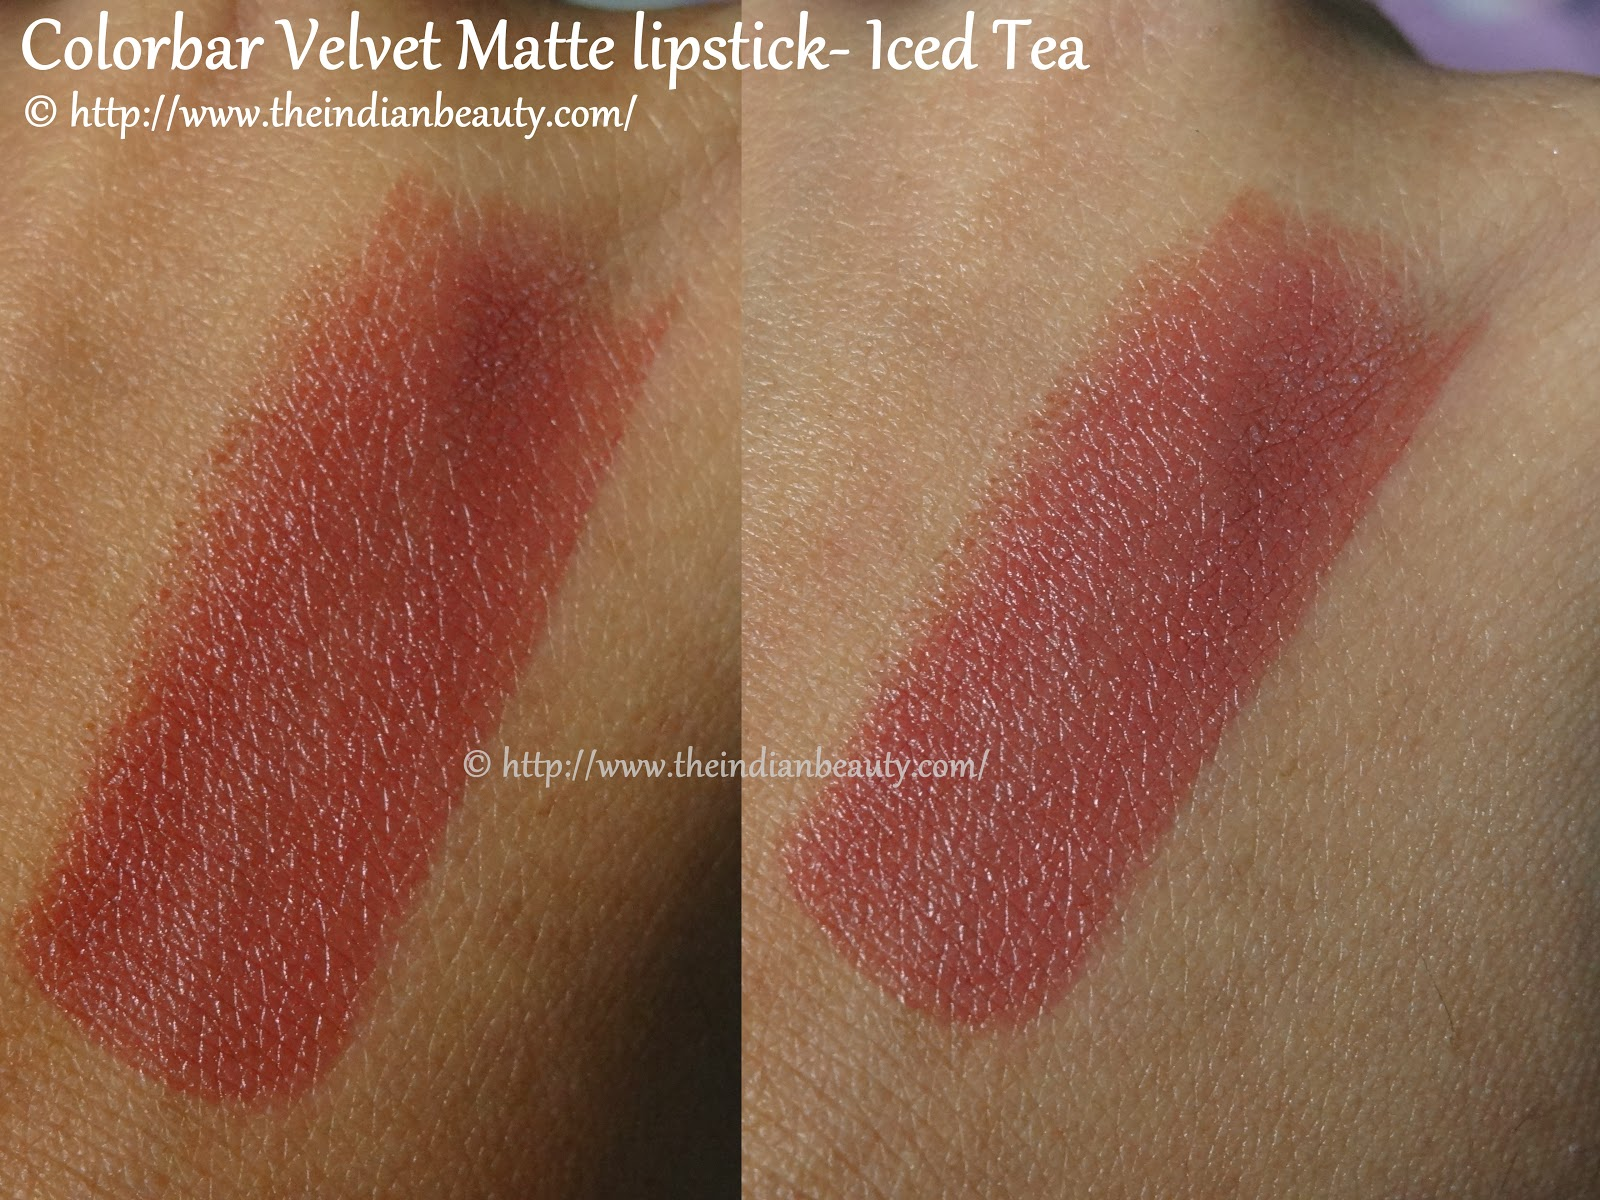 Colorbar Velvet Matte Lipcolor Iced Tea Review Swatches Lotd